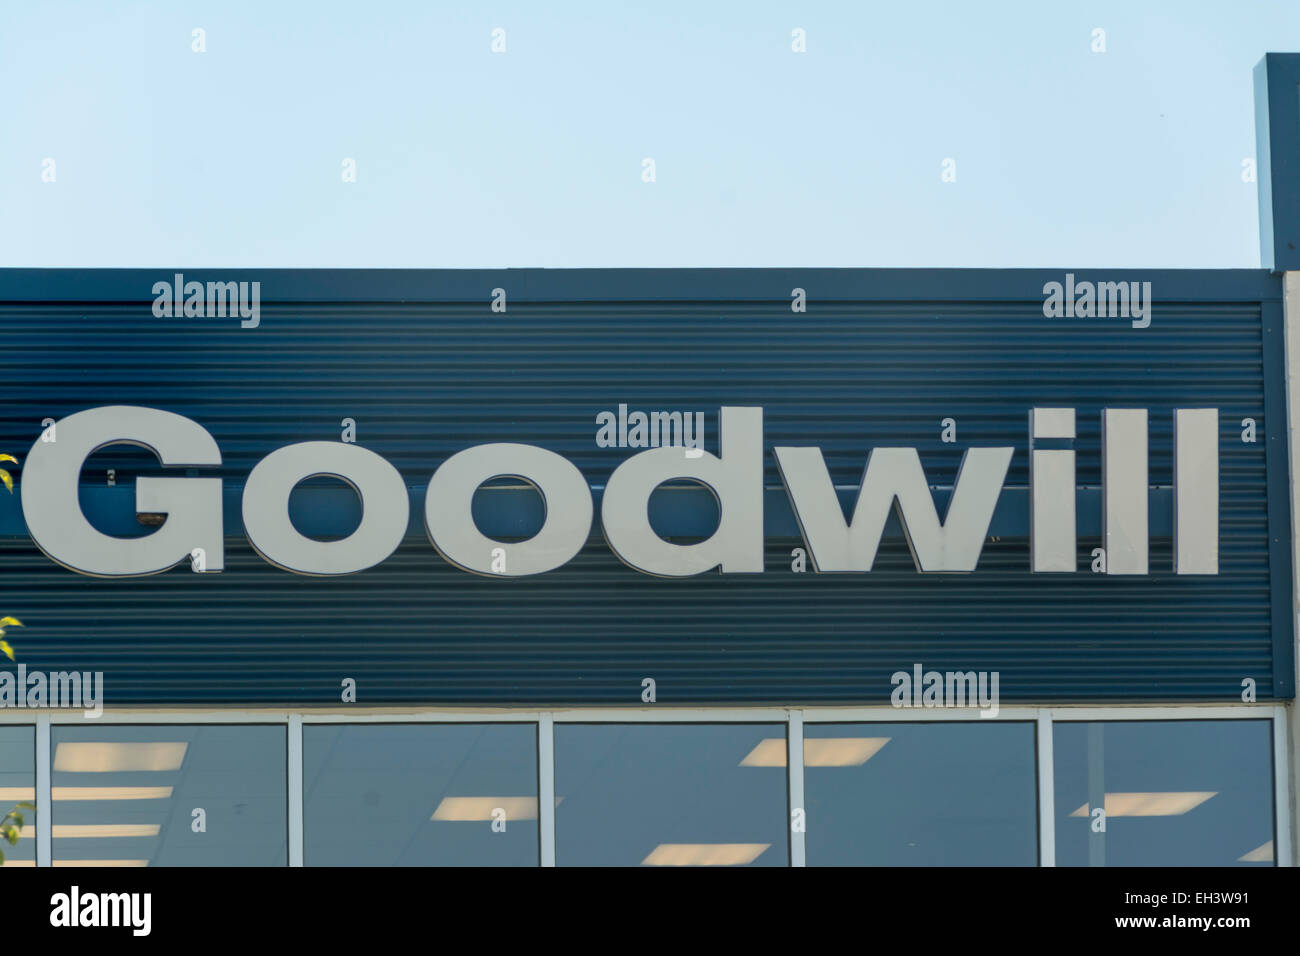 Goodwill store sign - Stock Image